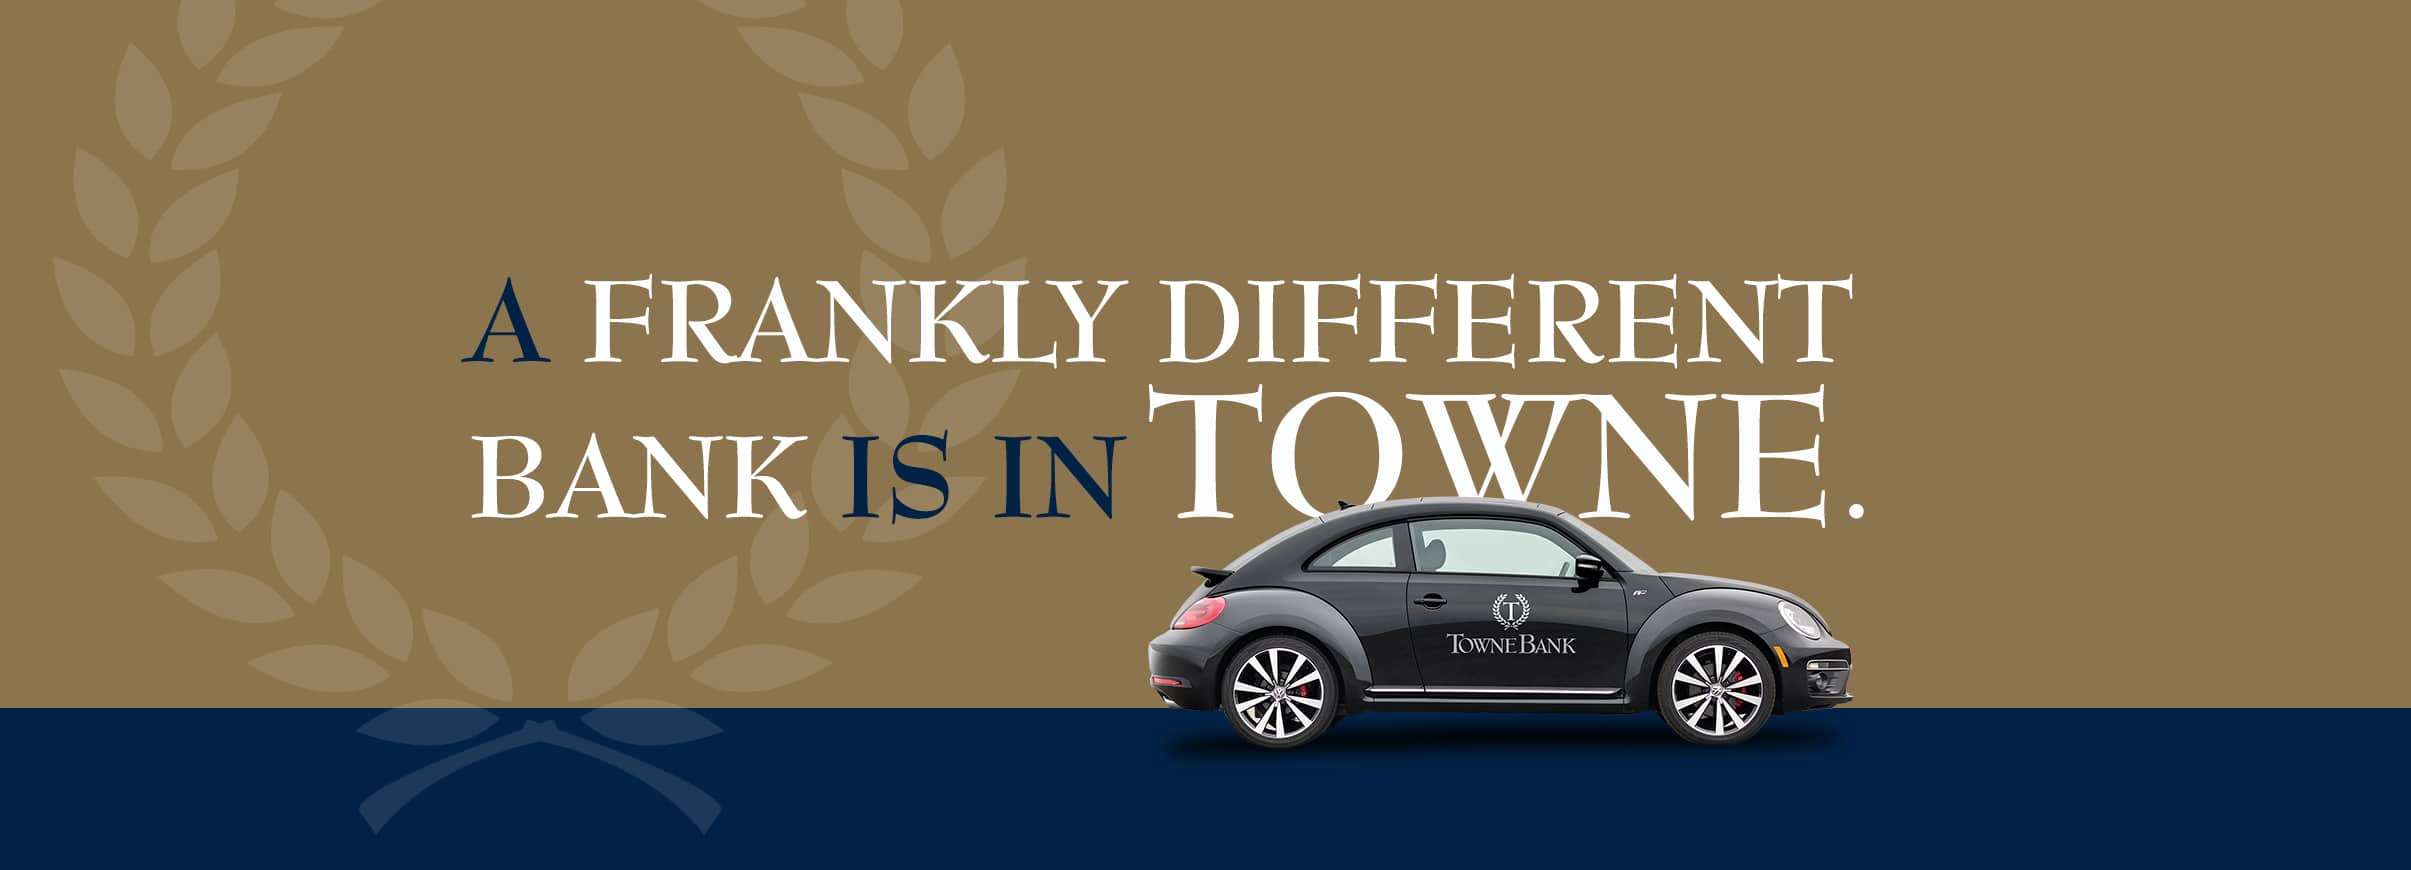 TowneBank Marketing and Advertising Campaign